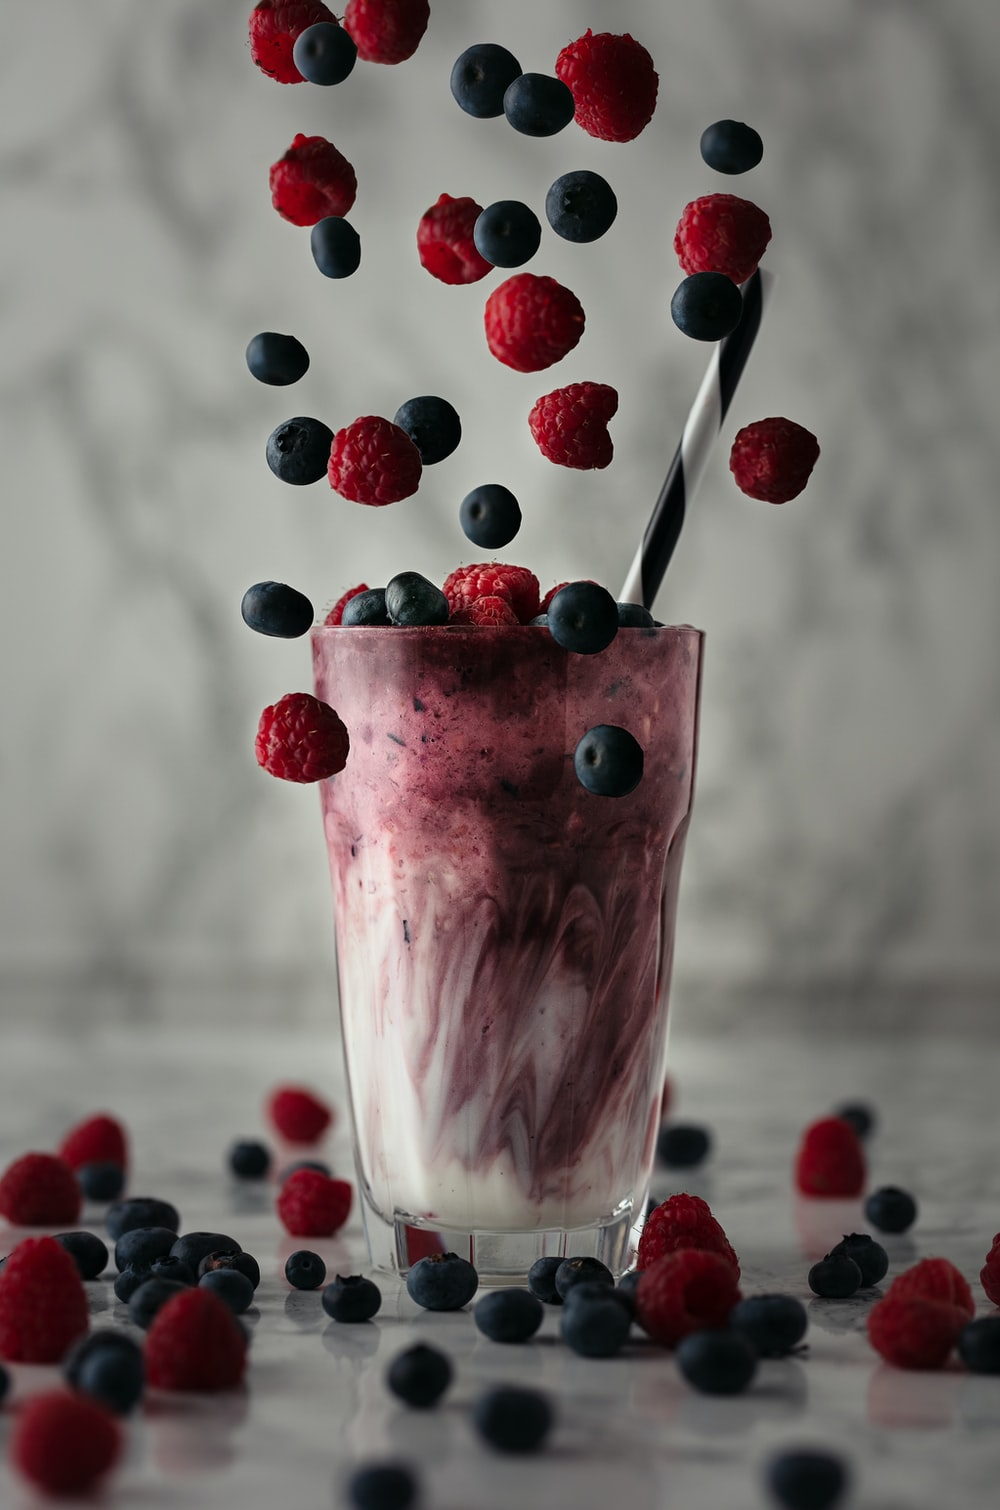 pink ice cream with red and blue berries on top